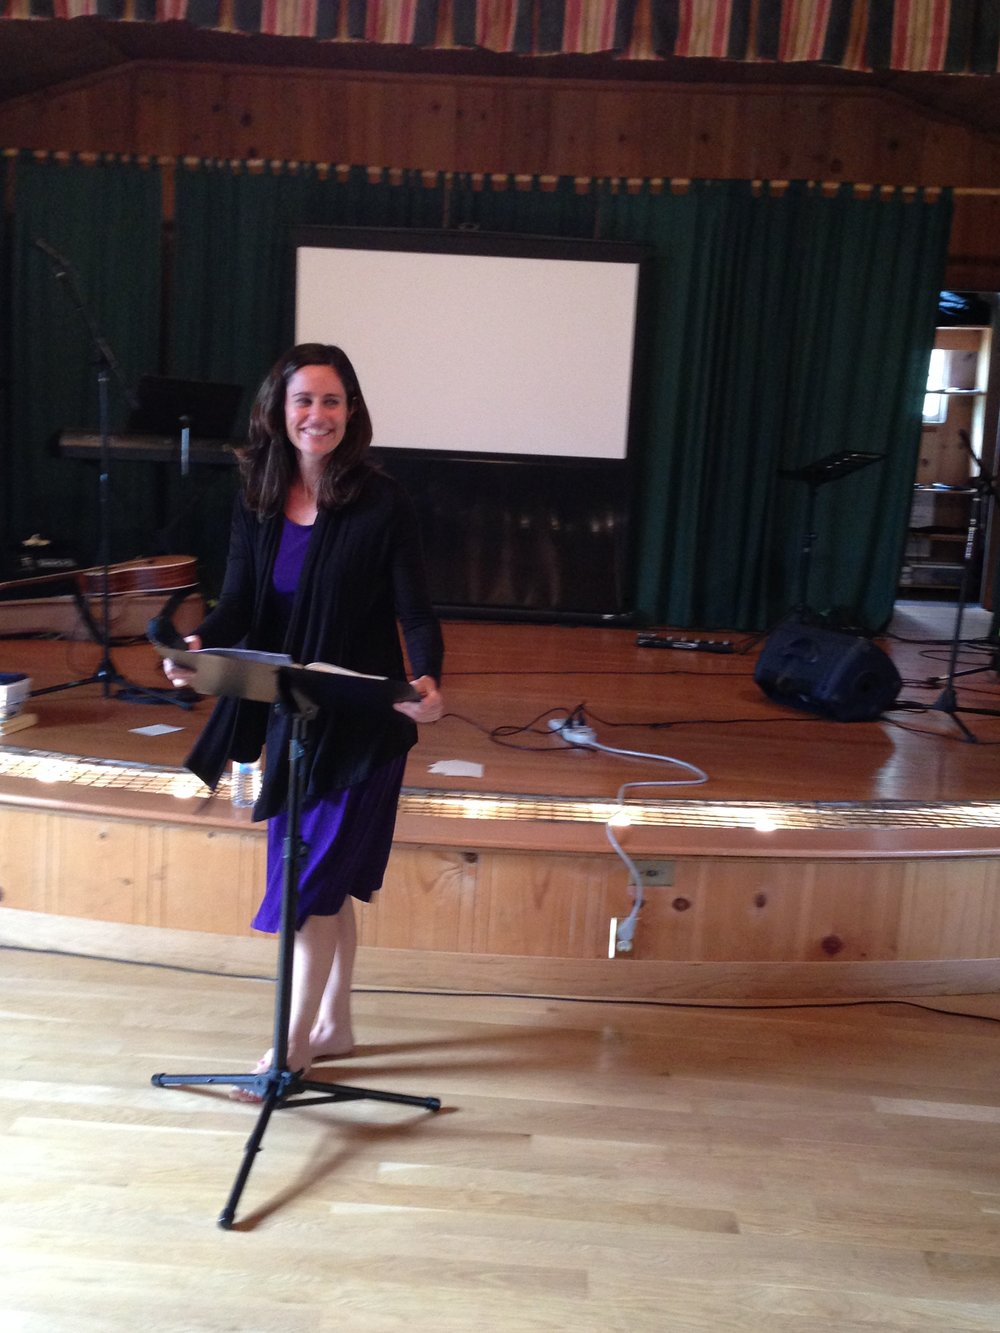 Preaching barefoot in honor of Saint Francis of Assisi.